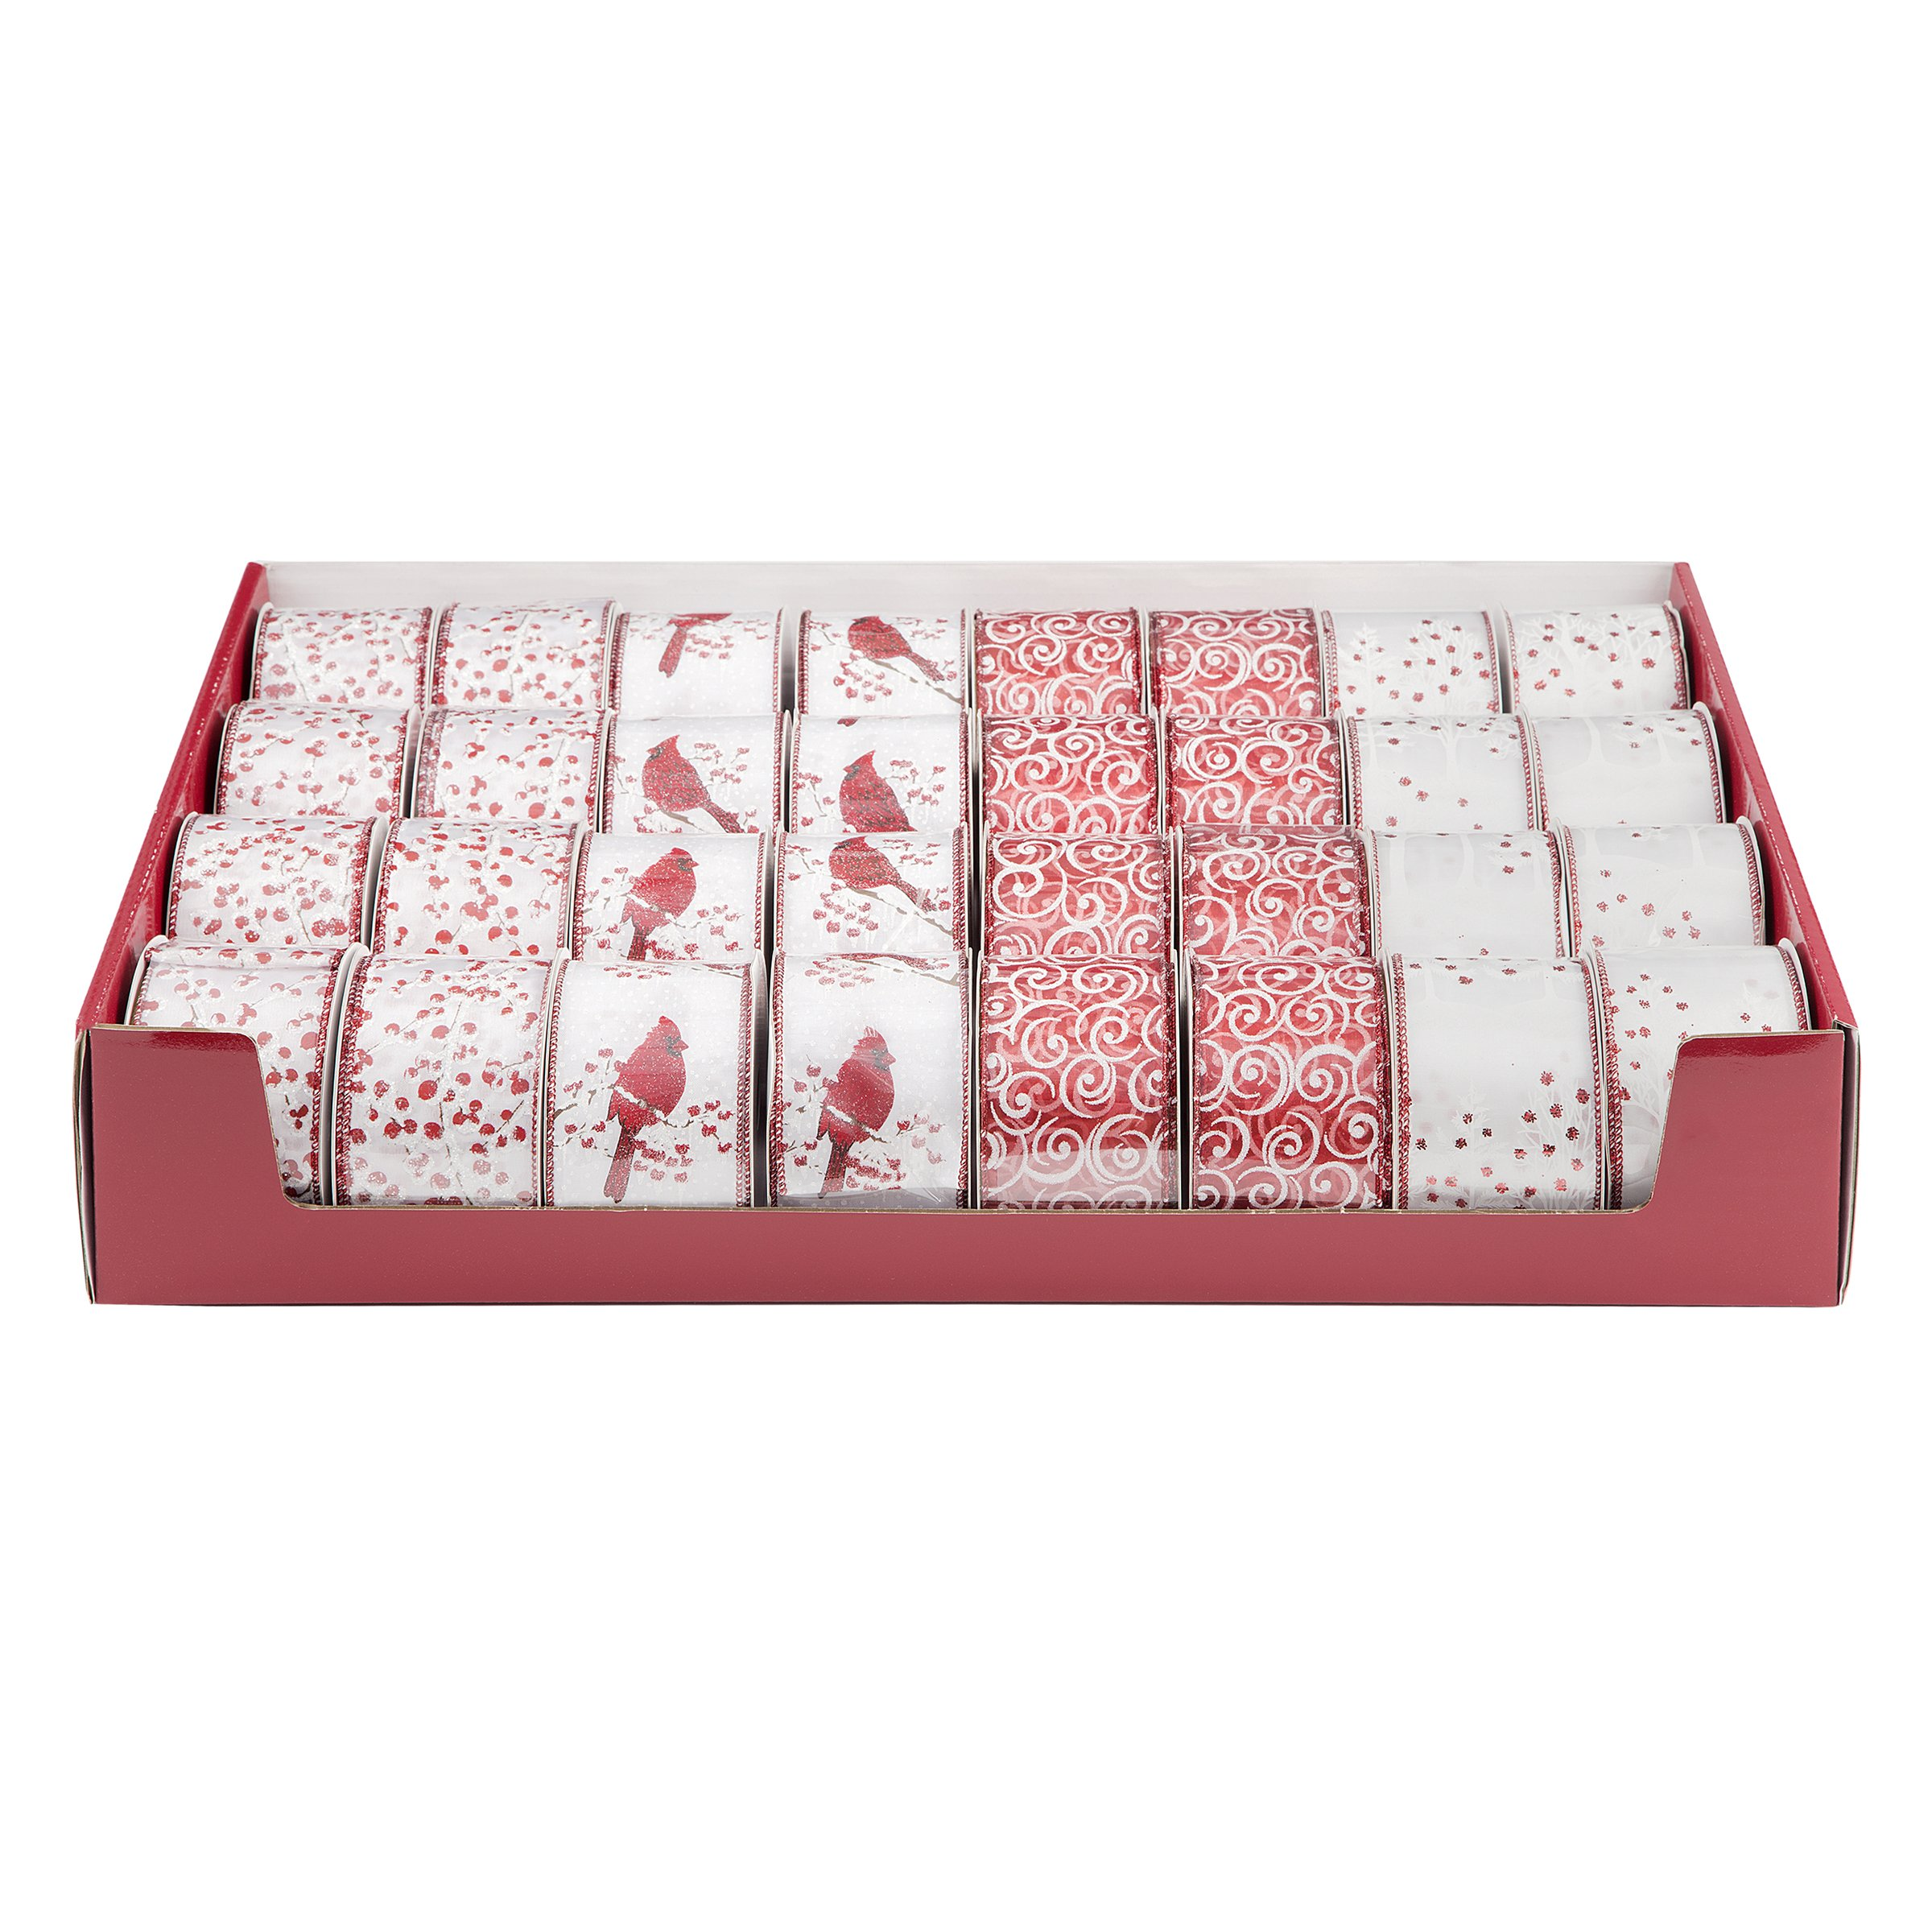 Darice Ribbon Assortments Red and White Christmas Ribbon 2.5in x 25 feet (8 Pack)